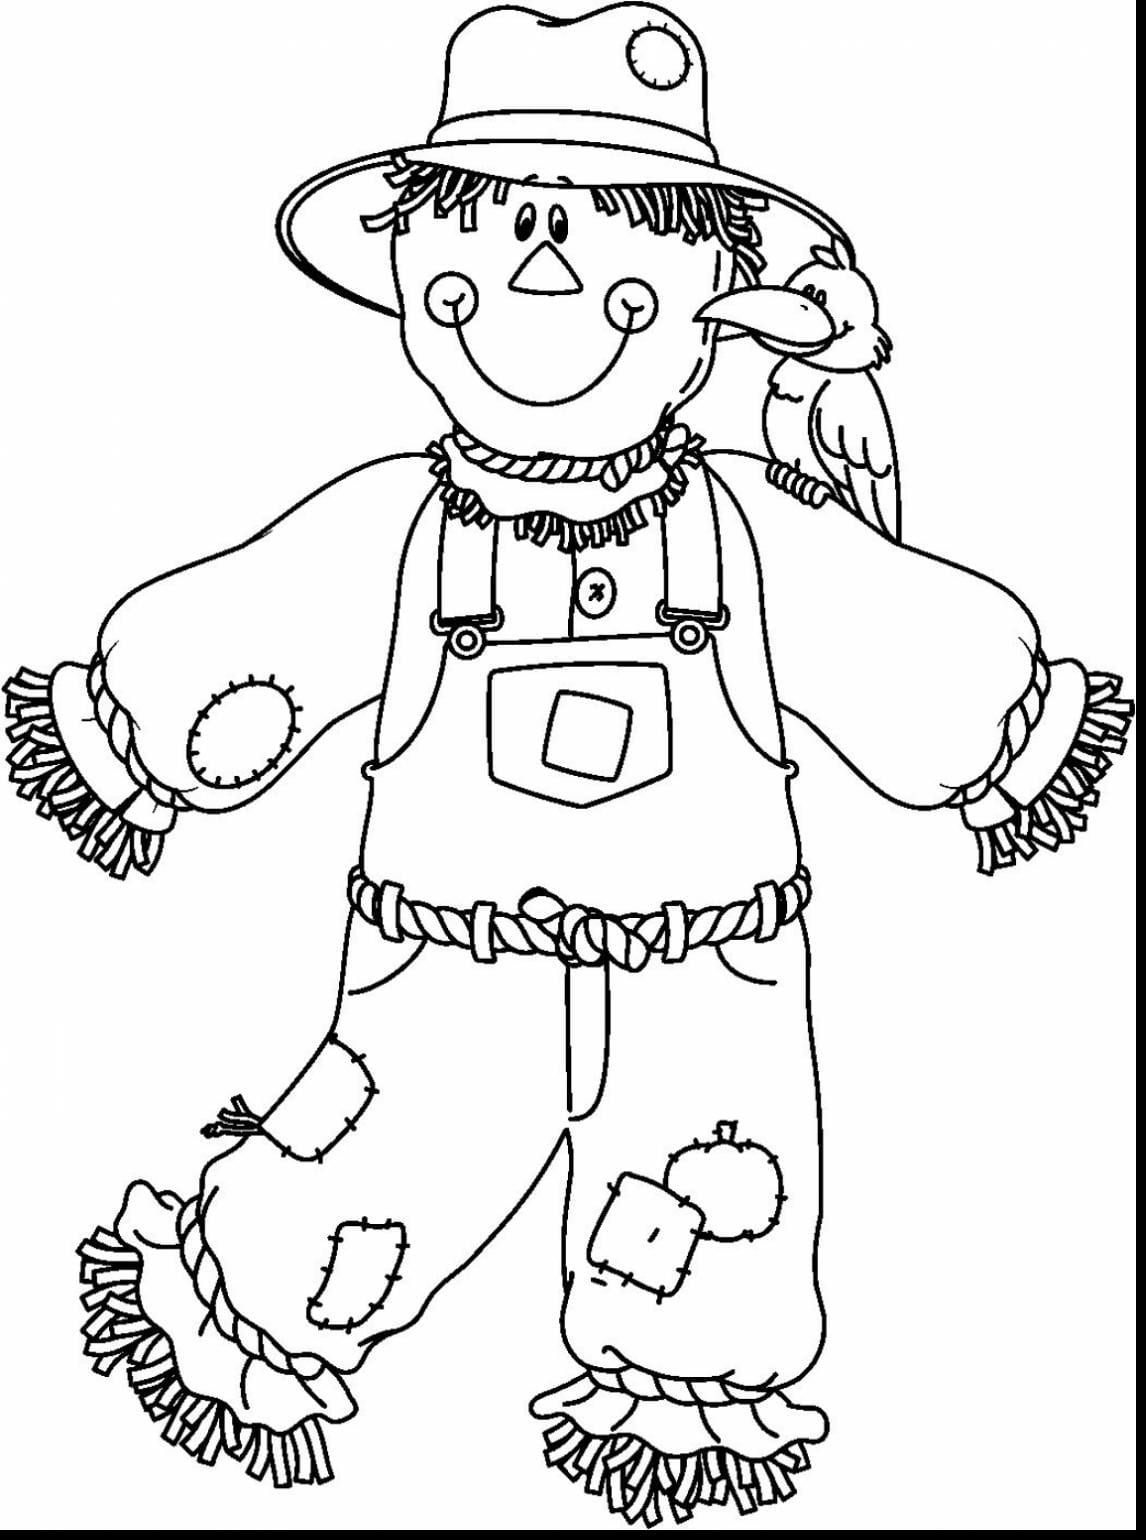 Free Printable Scarecrow Coloring Pages